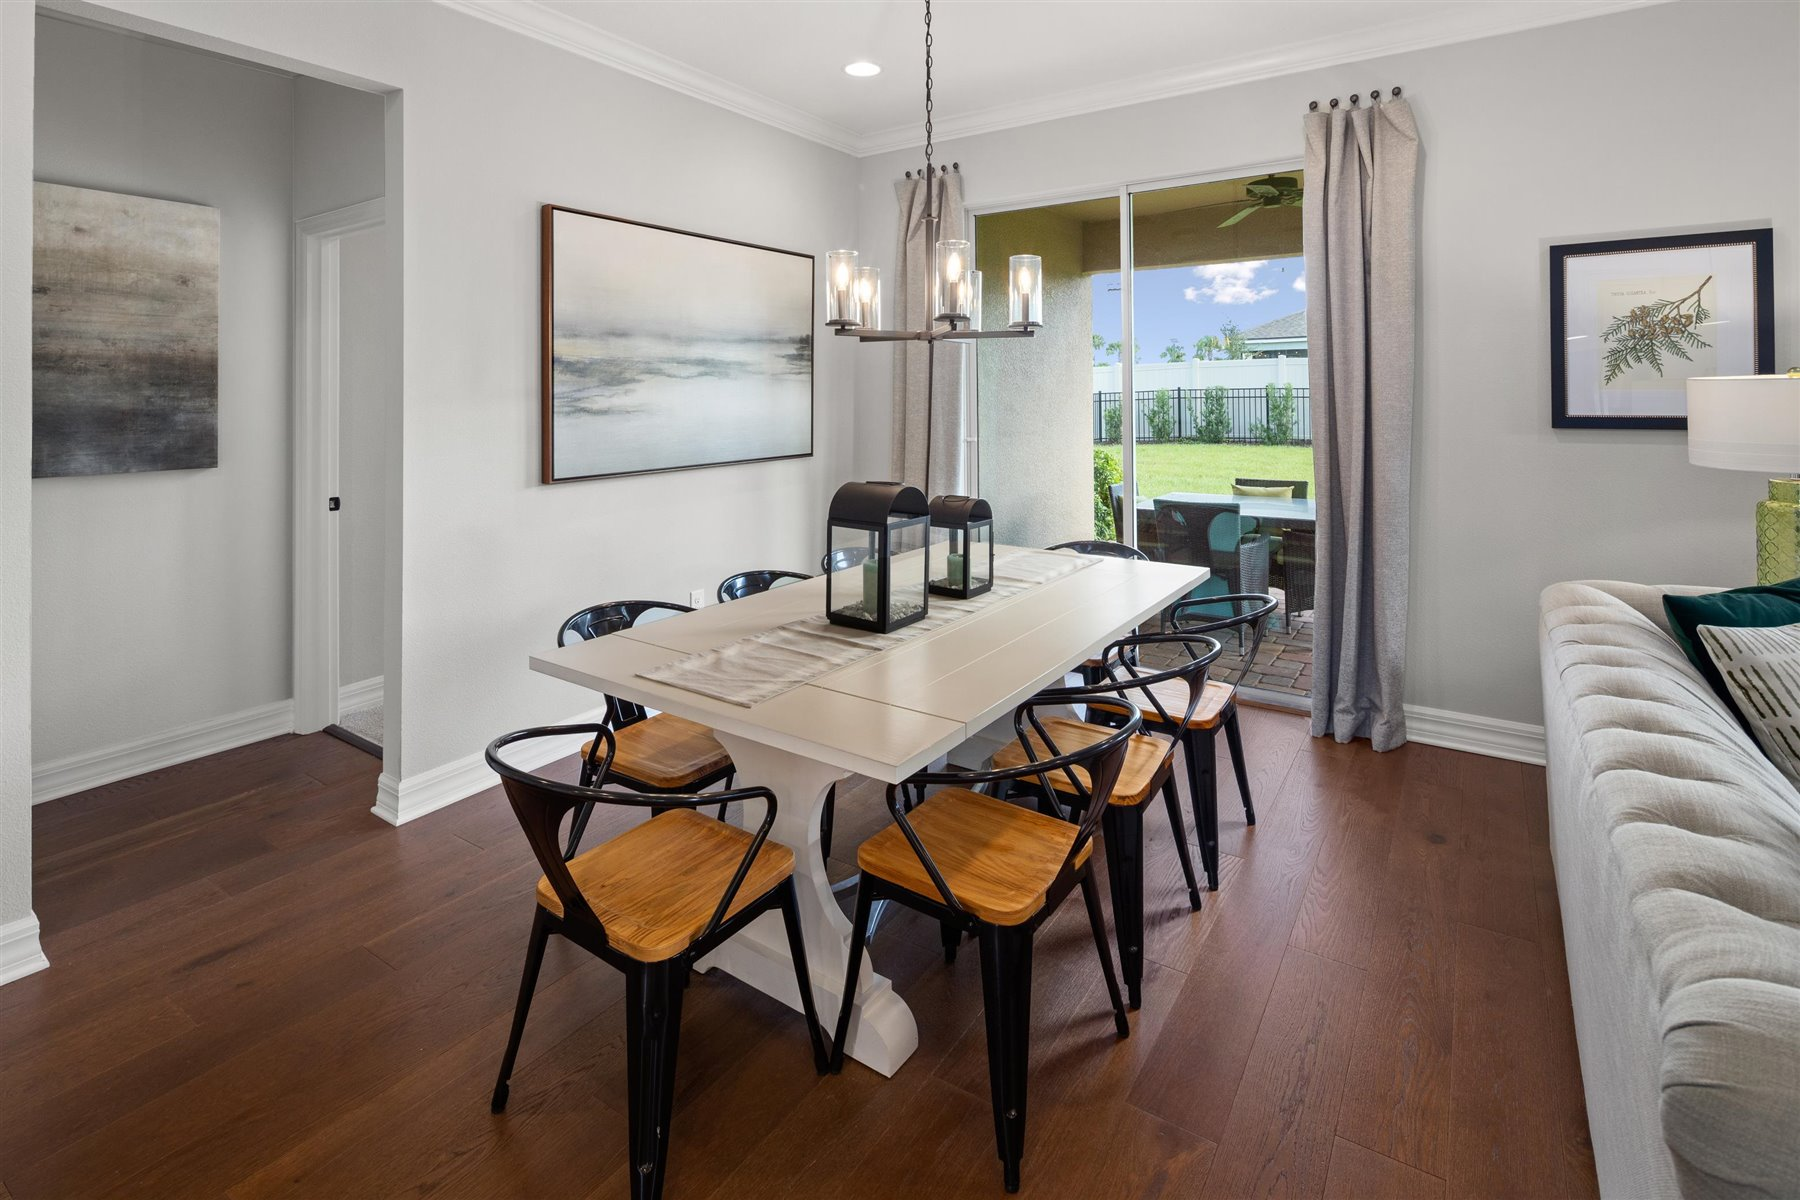 Crescent Plan Dining at Waterbrooke in Clermont Florida by Mattamy Homes